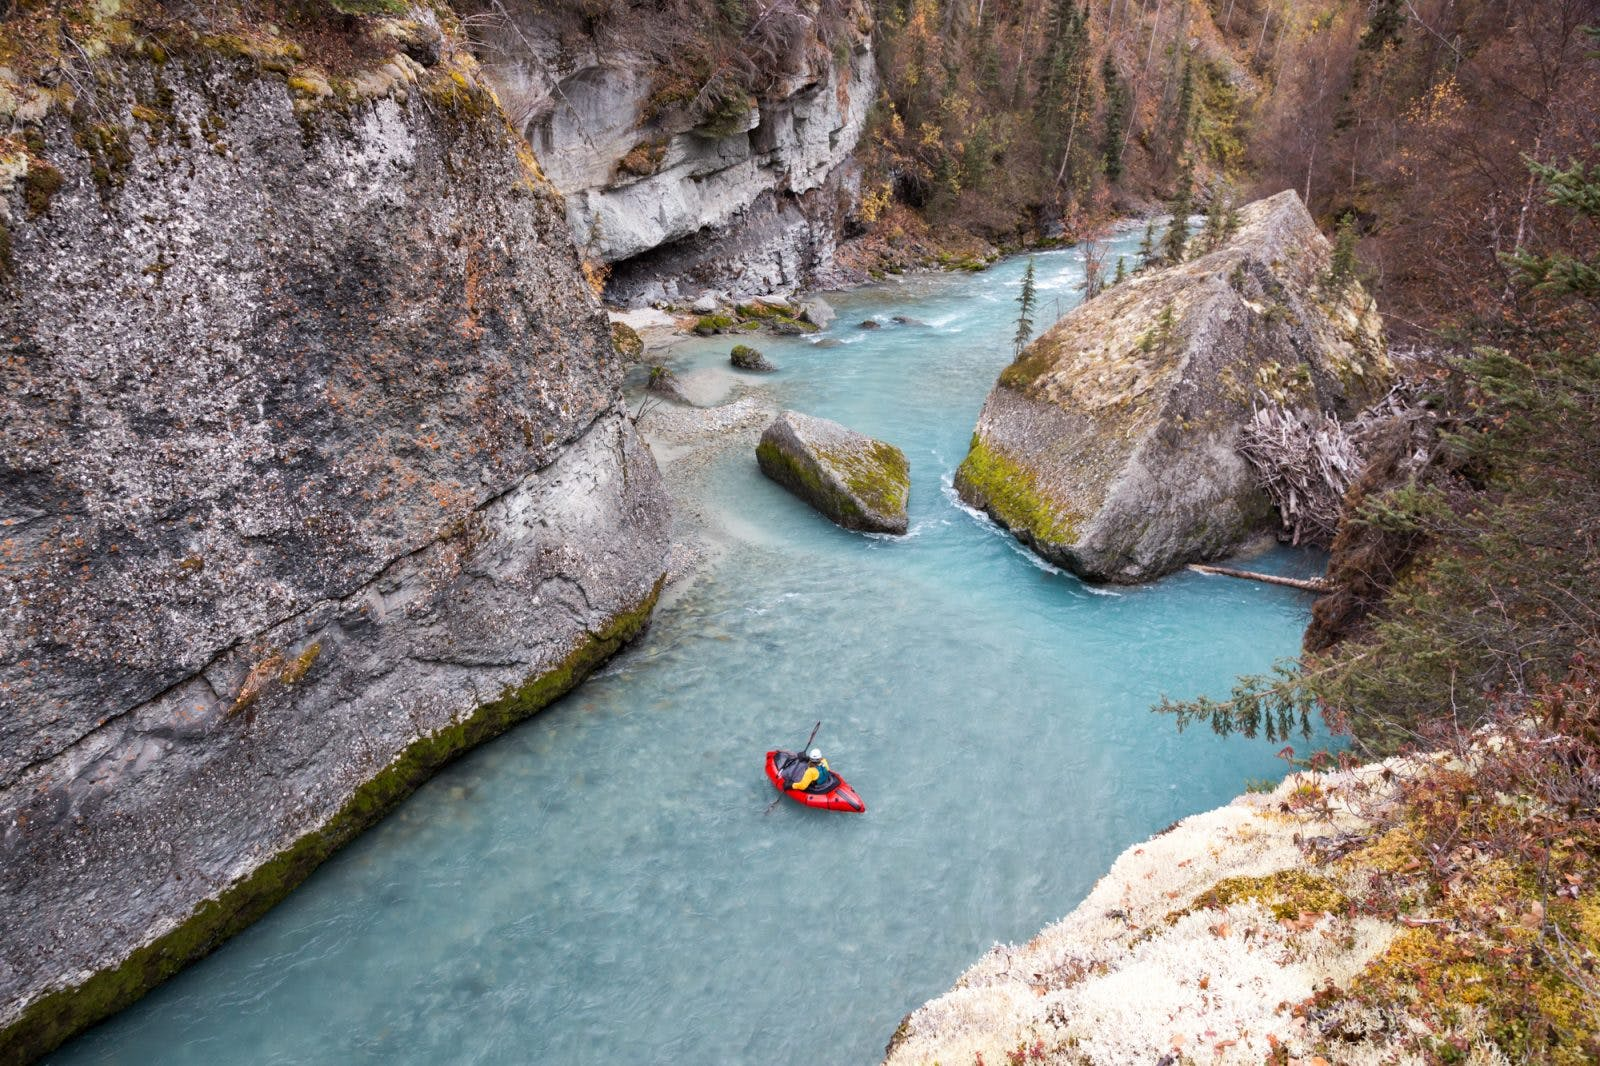 Sarah packrafting on the Chickaloon. Photo by Luc Mehl.